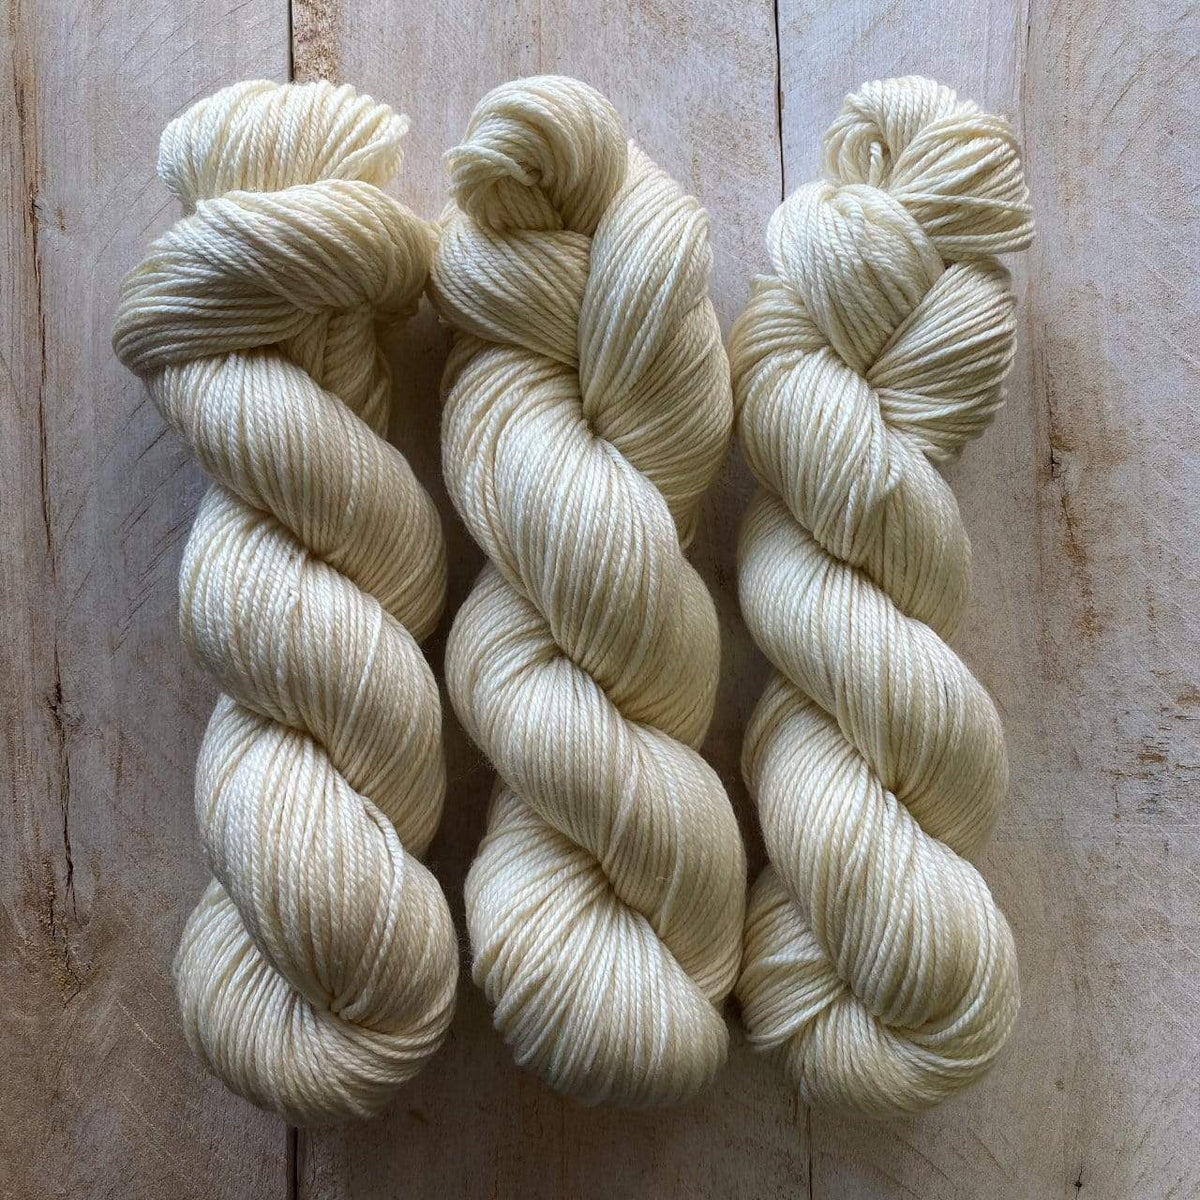 CANEVAS by Louise Robert Design | DK PURE hand-dyed semi-solid yarn